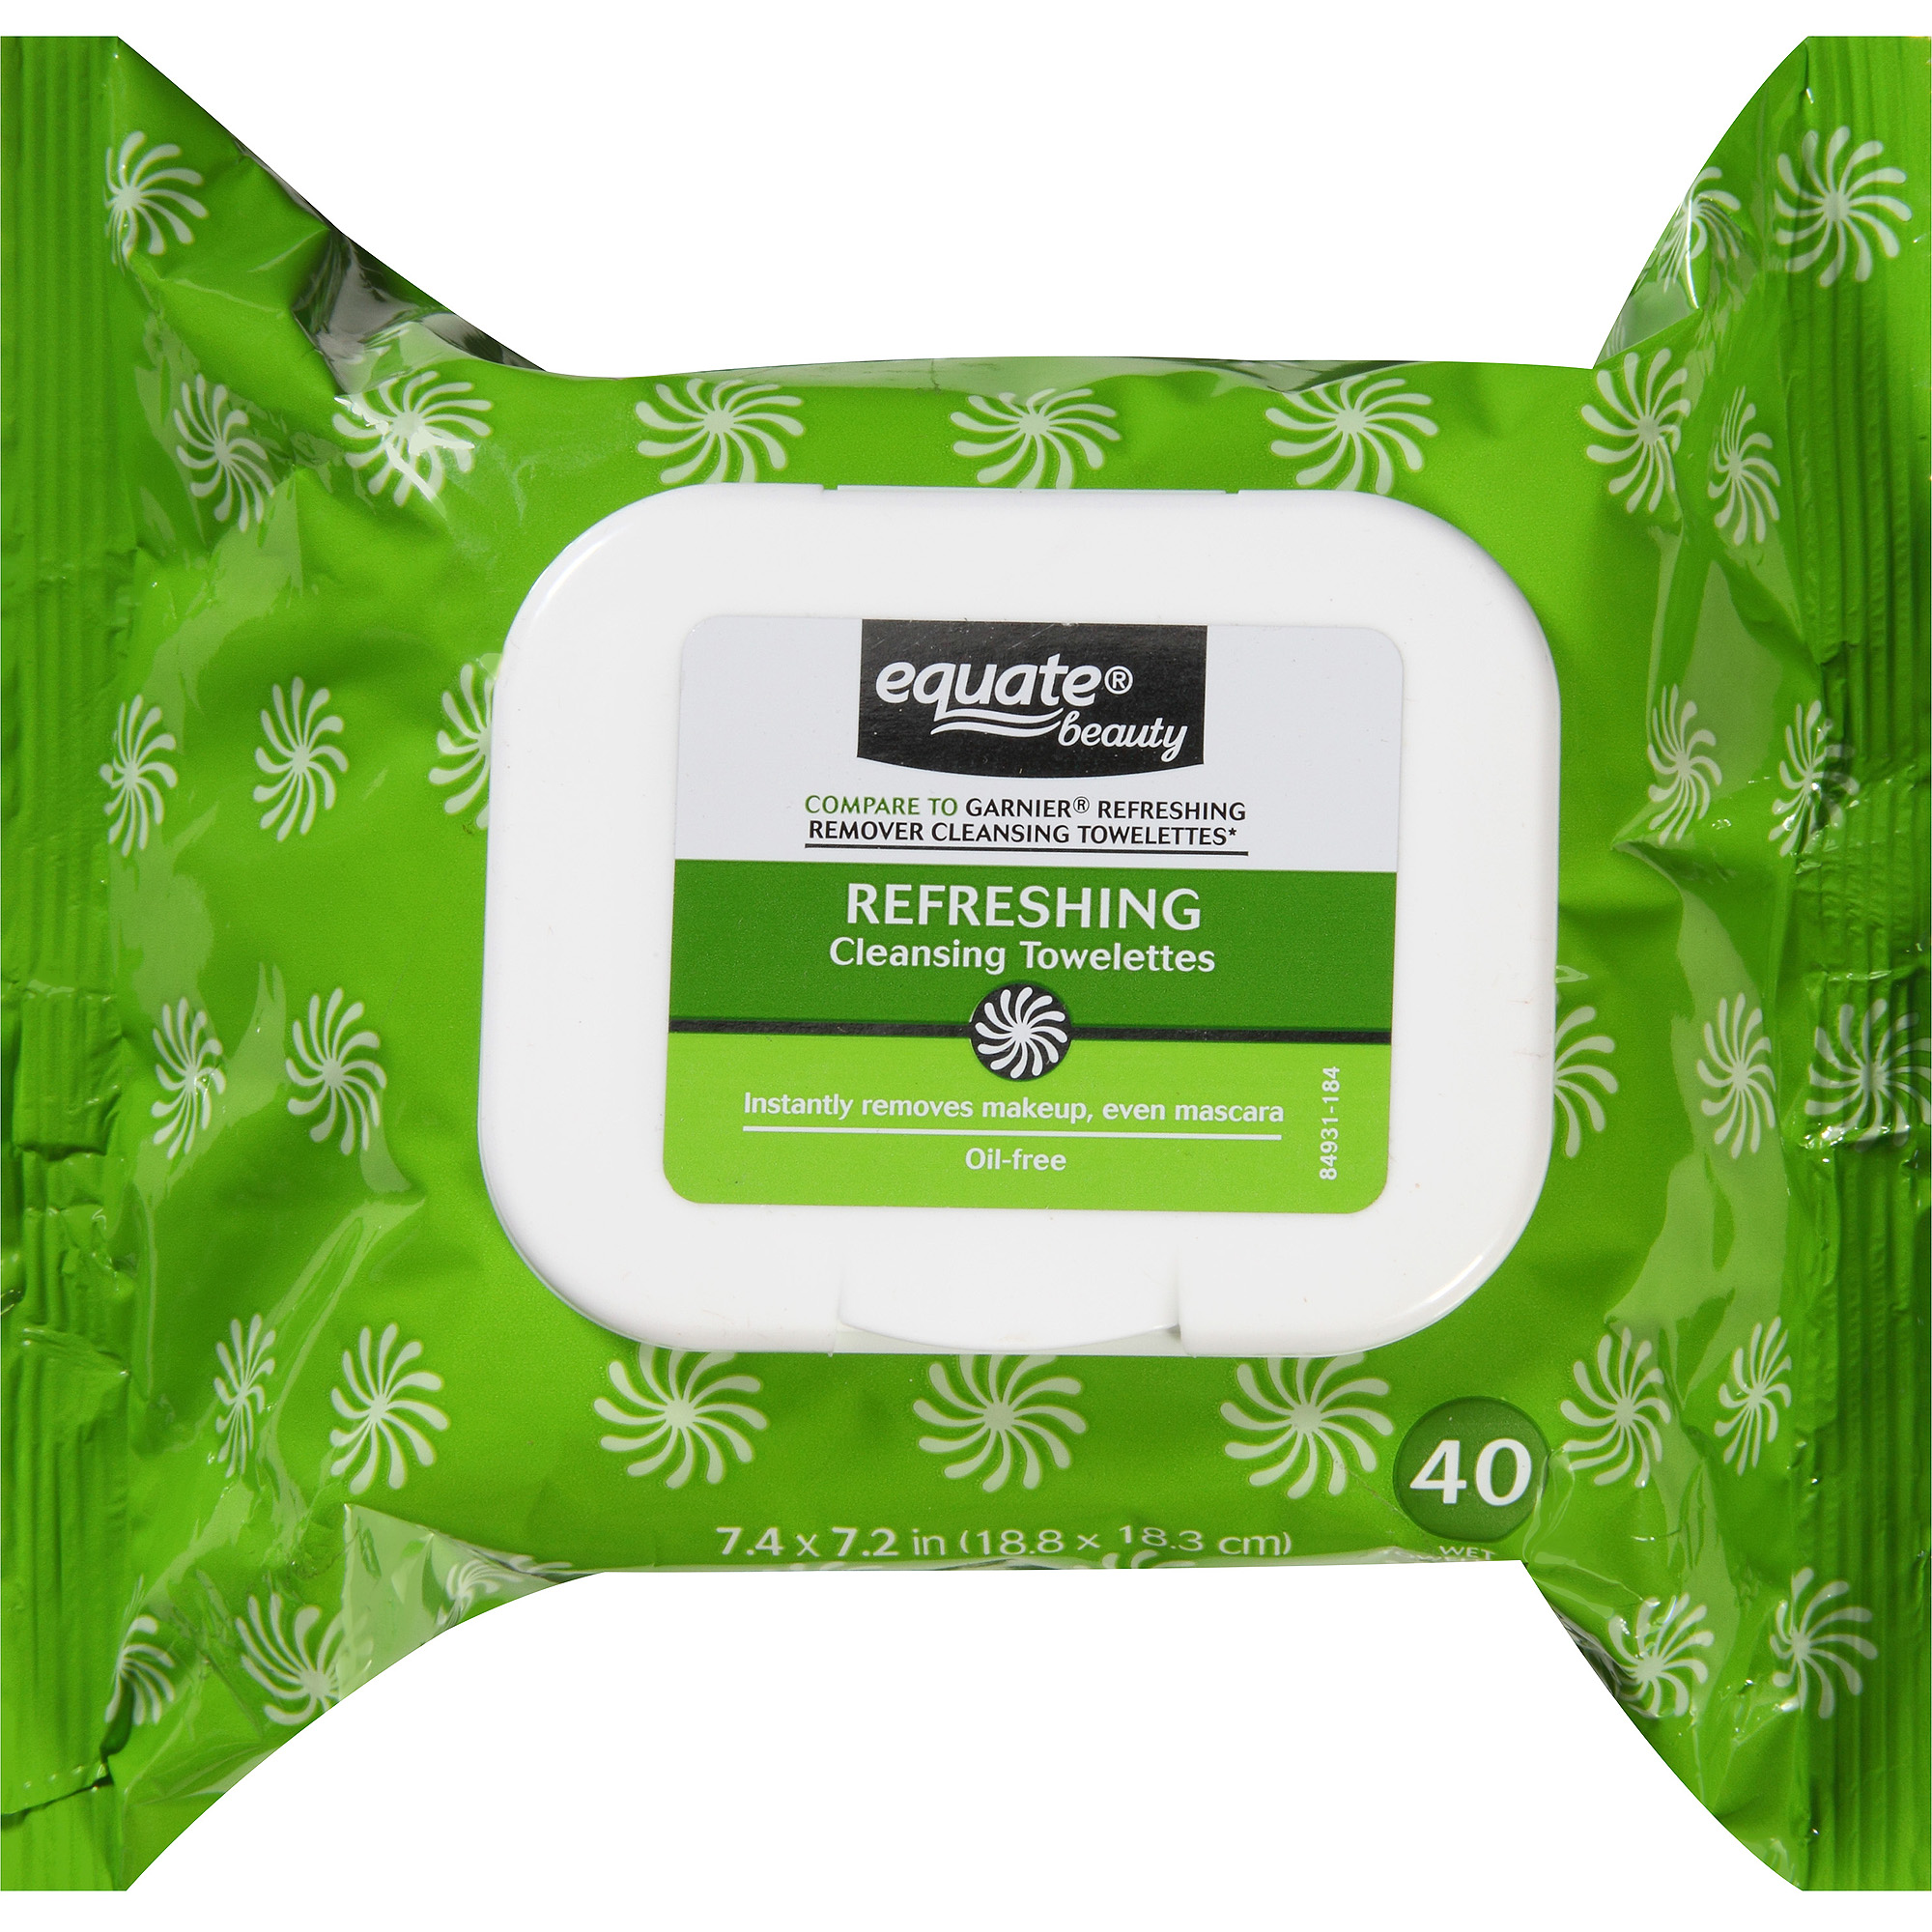 Equate Beauty Refreshing Cleansing Towelettes, 40 sheets